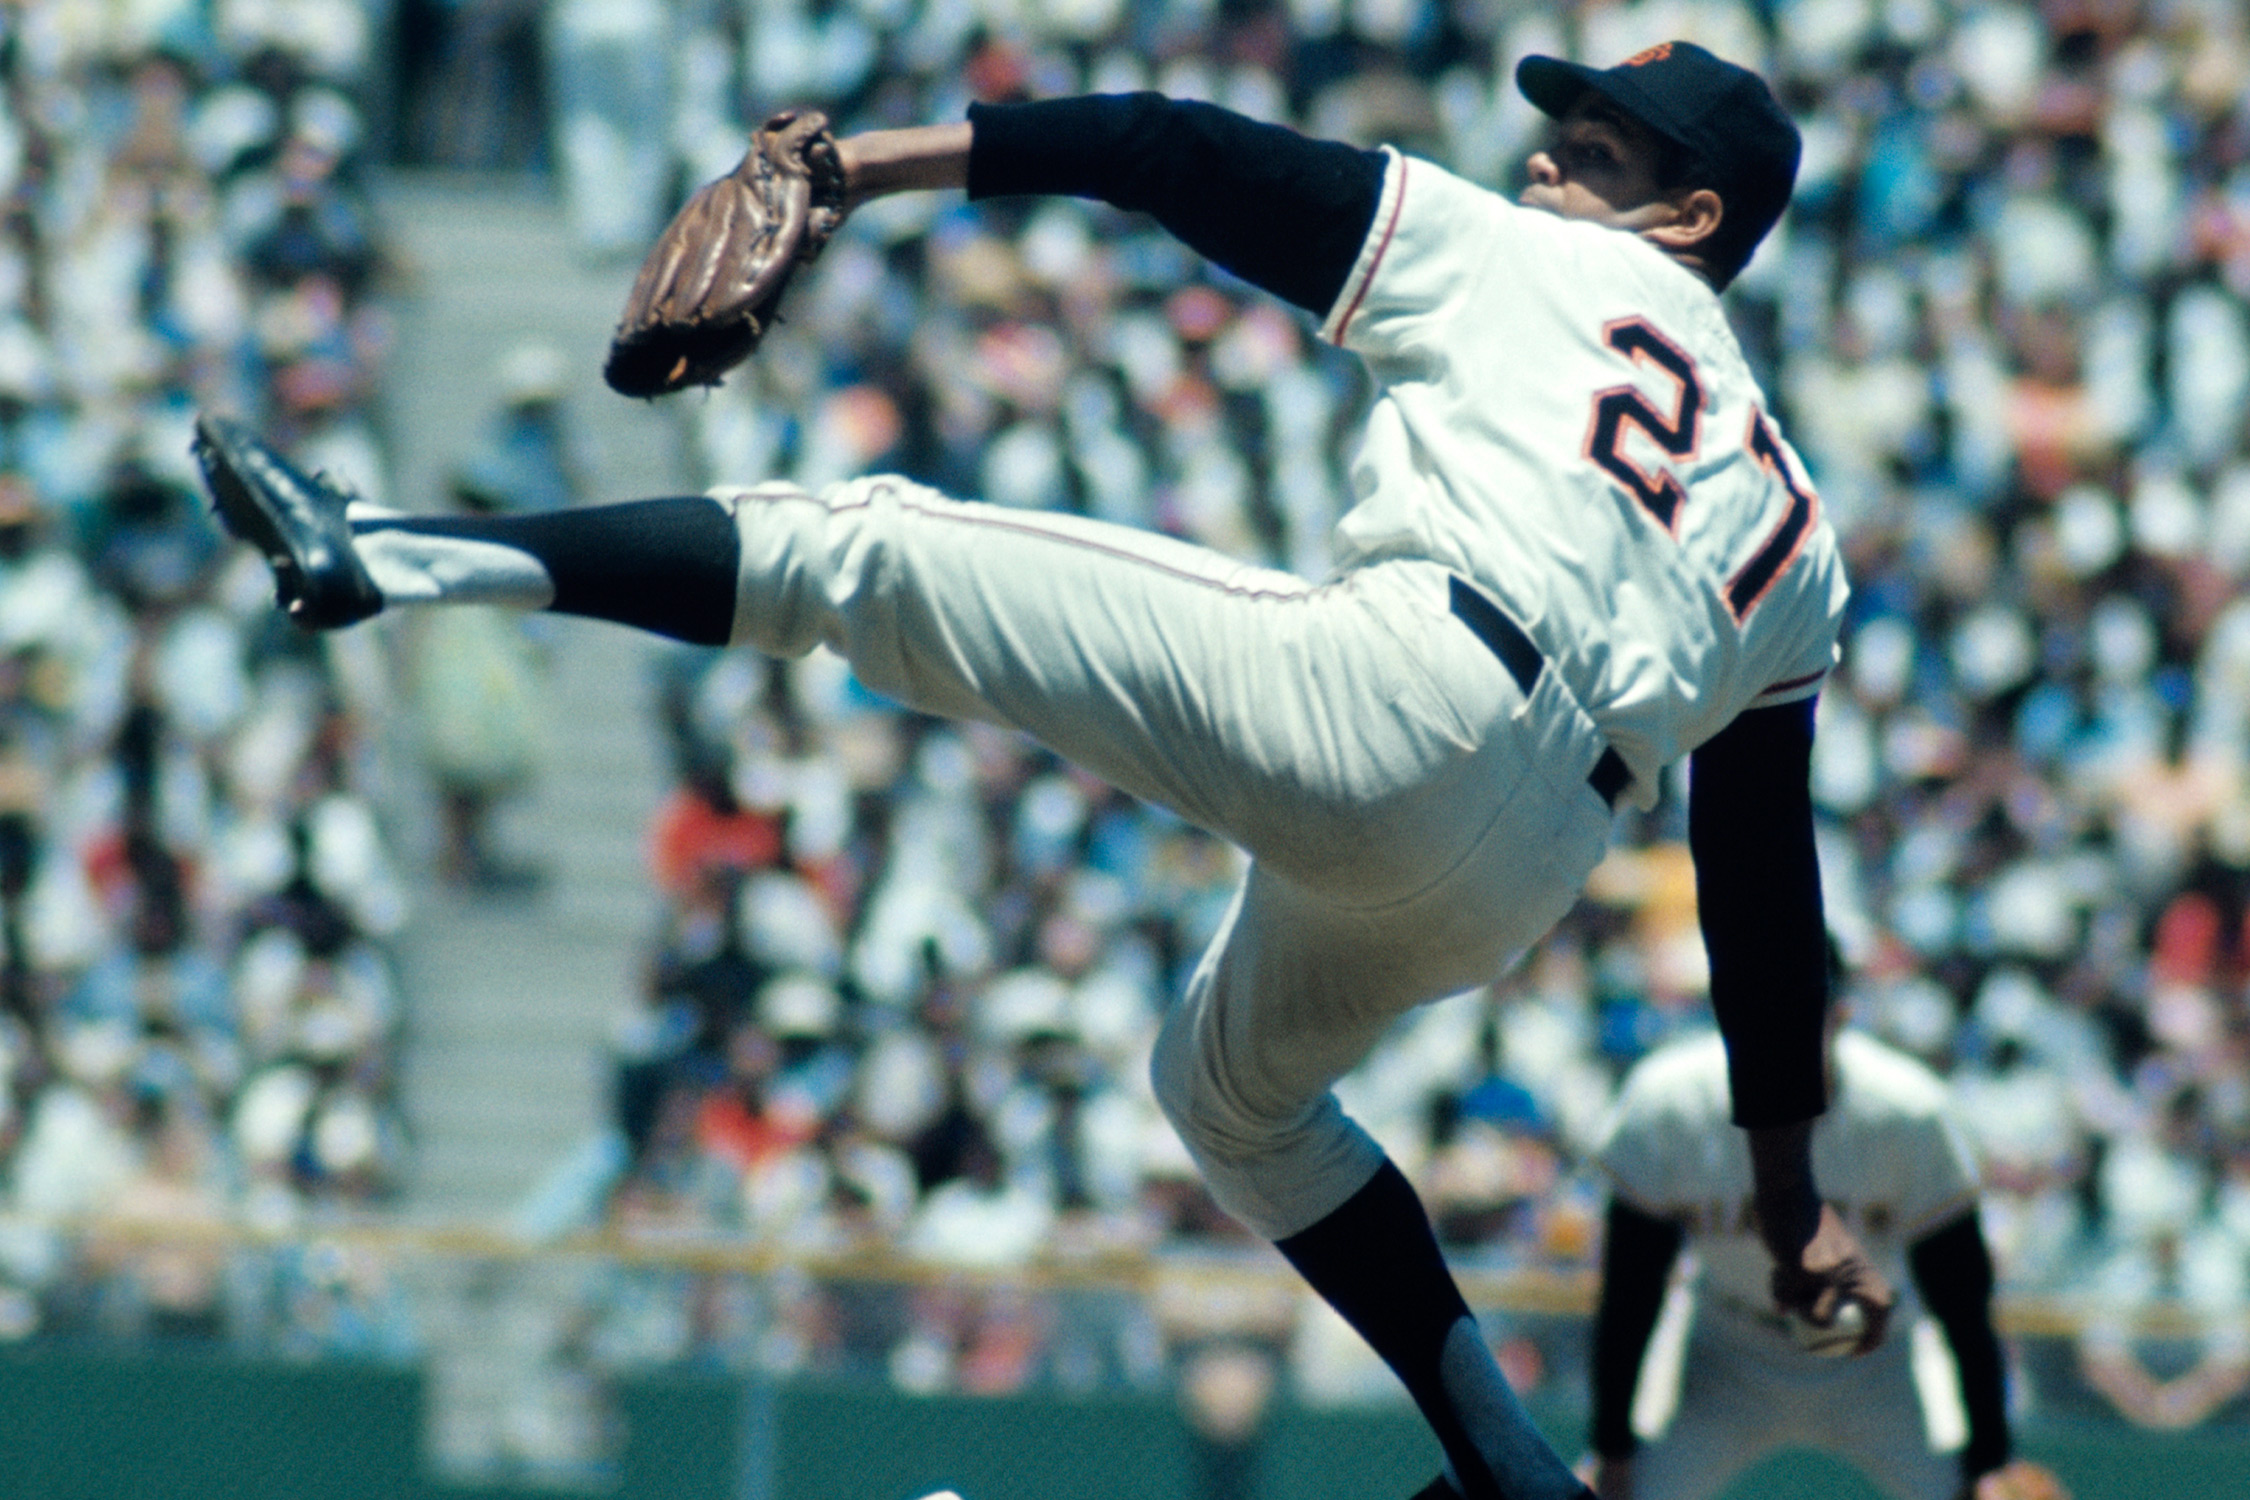 Marichal dominated the Phillies, carrying a perfect game into the 7th and a no-hitter into the 8th. He ultimately tossed a one-hit shutout, striking out 12 while walking just one.